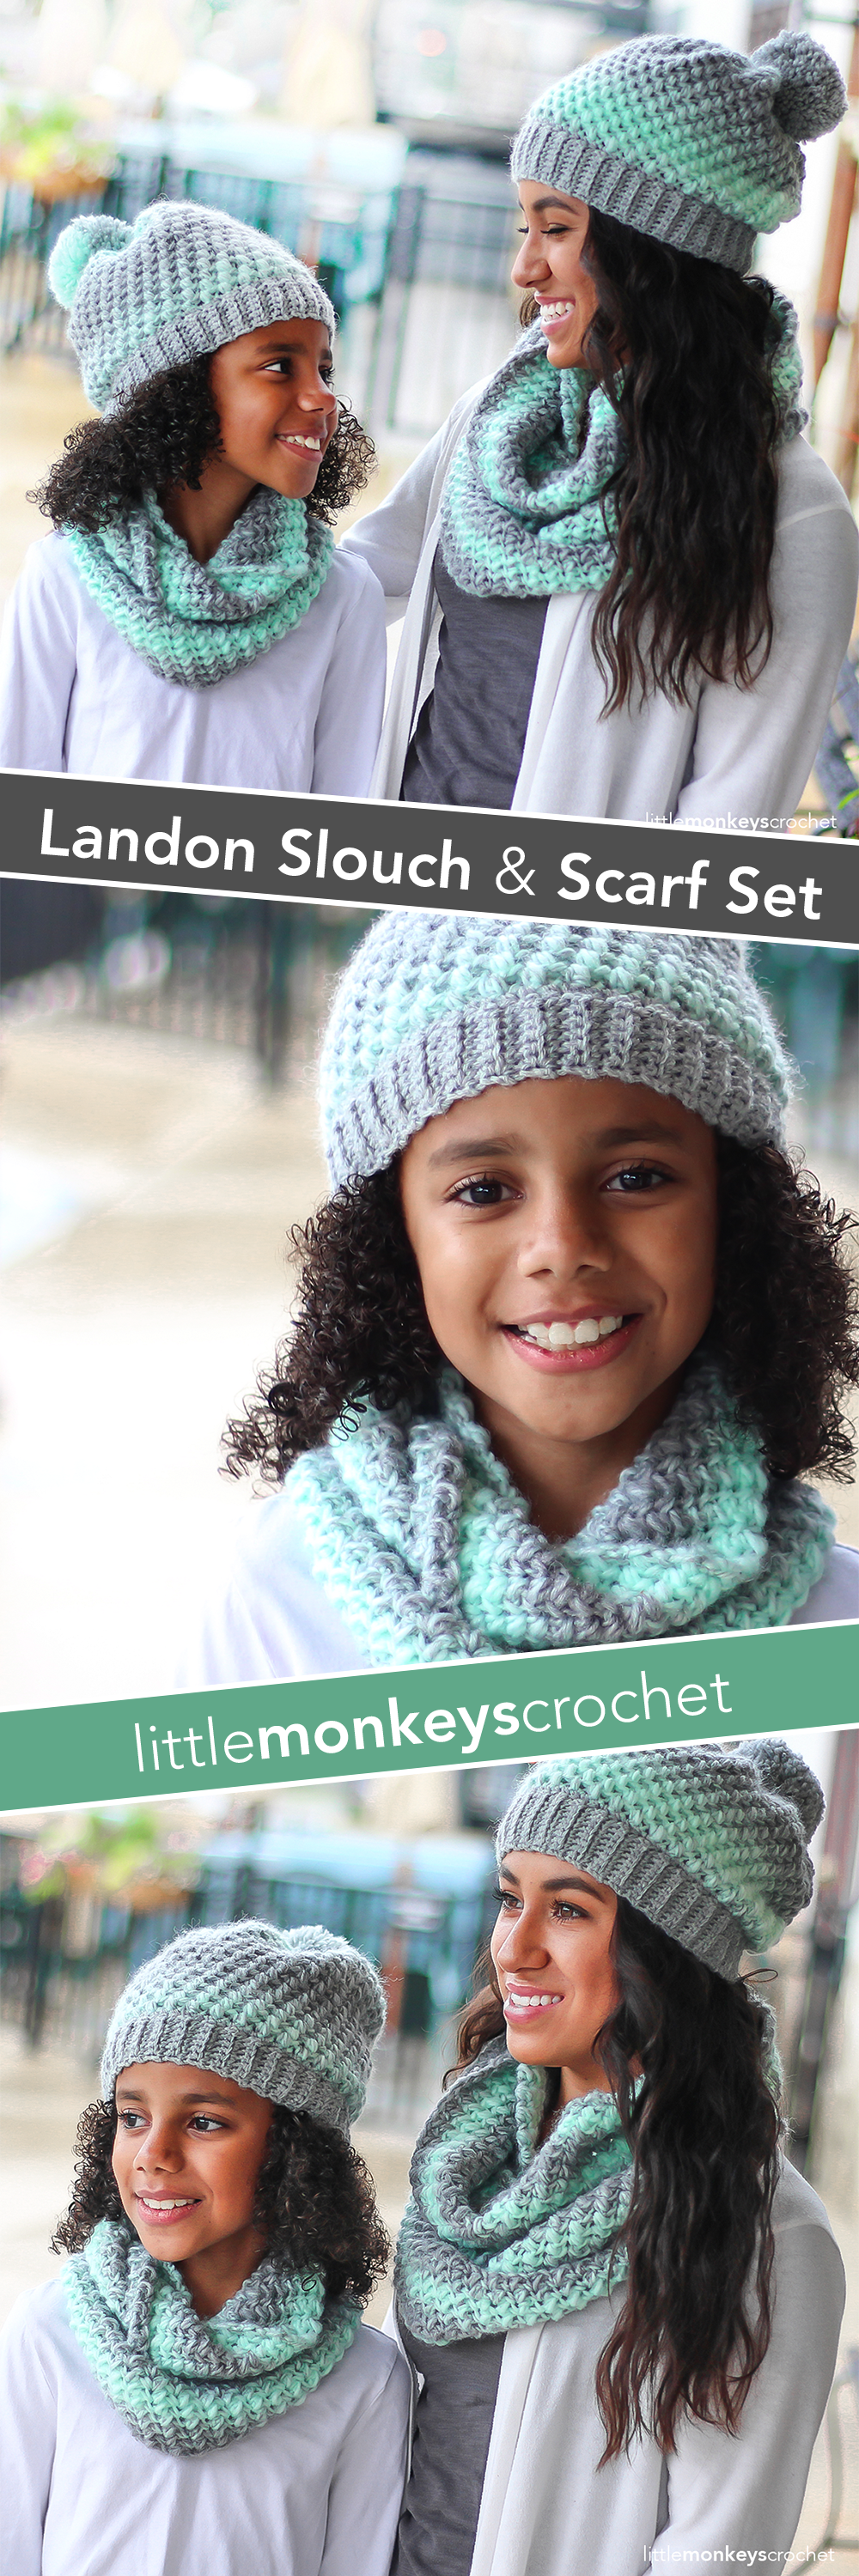 Landon slouch hat infinity scarf crochet pattern set free crochet landon slouch hat infinity scarf crochet pattern set free bankloansurffo Image collections